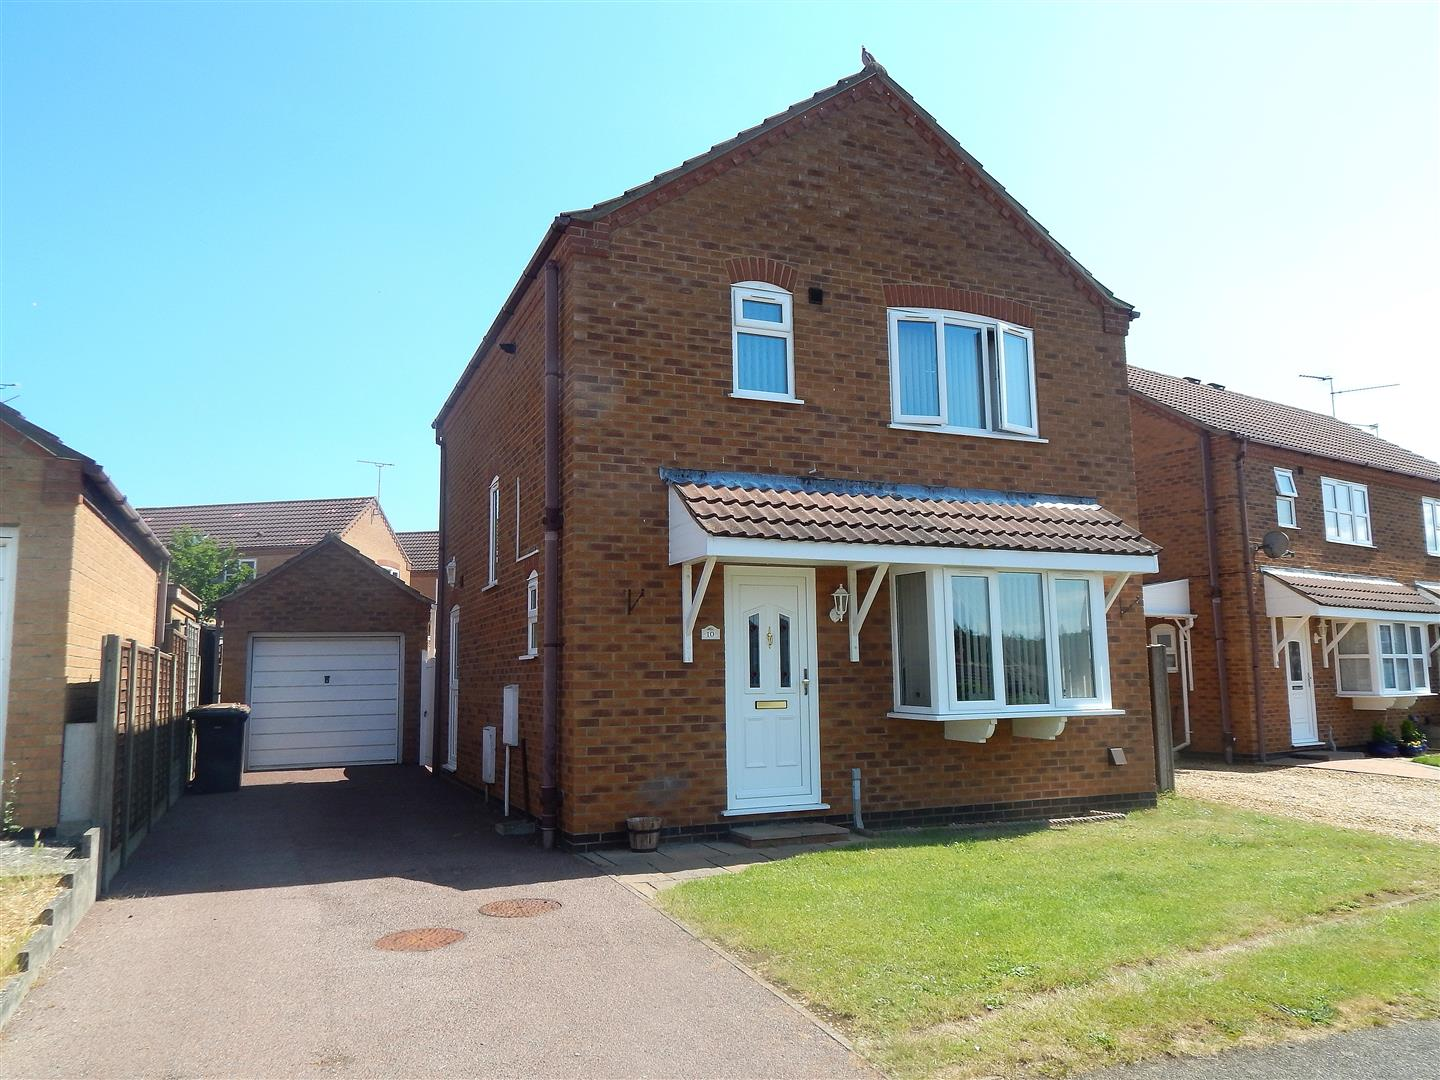 3 bed detached house for sale in Robert Balding Road, King's Lynn - Property Image 1